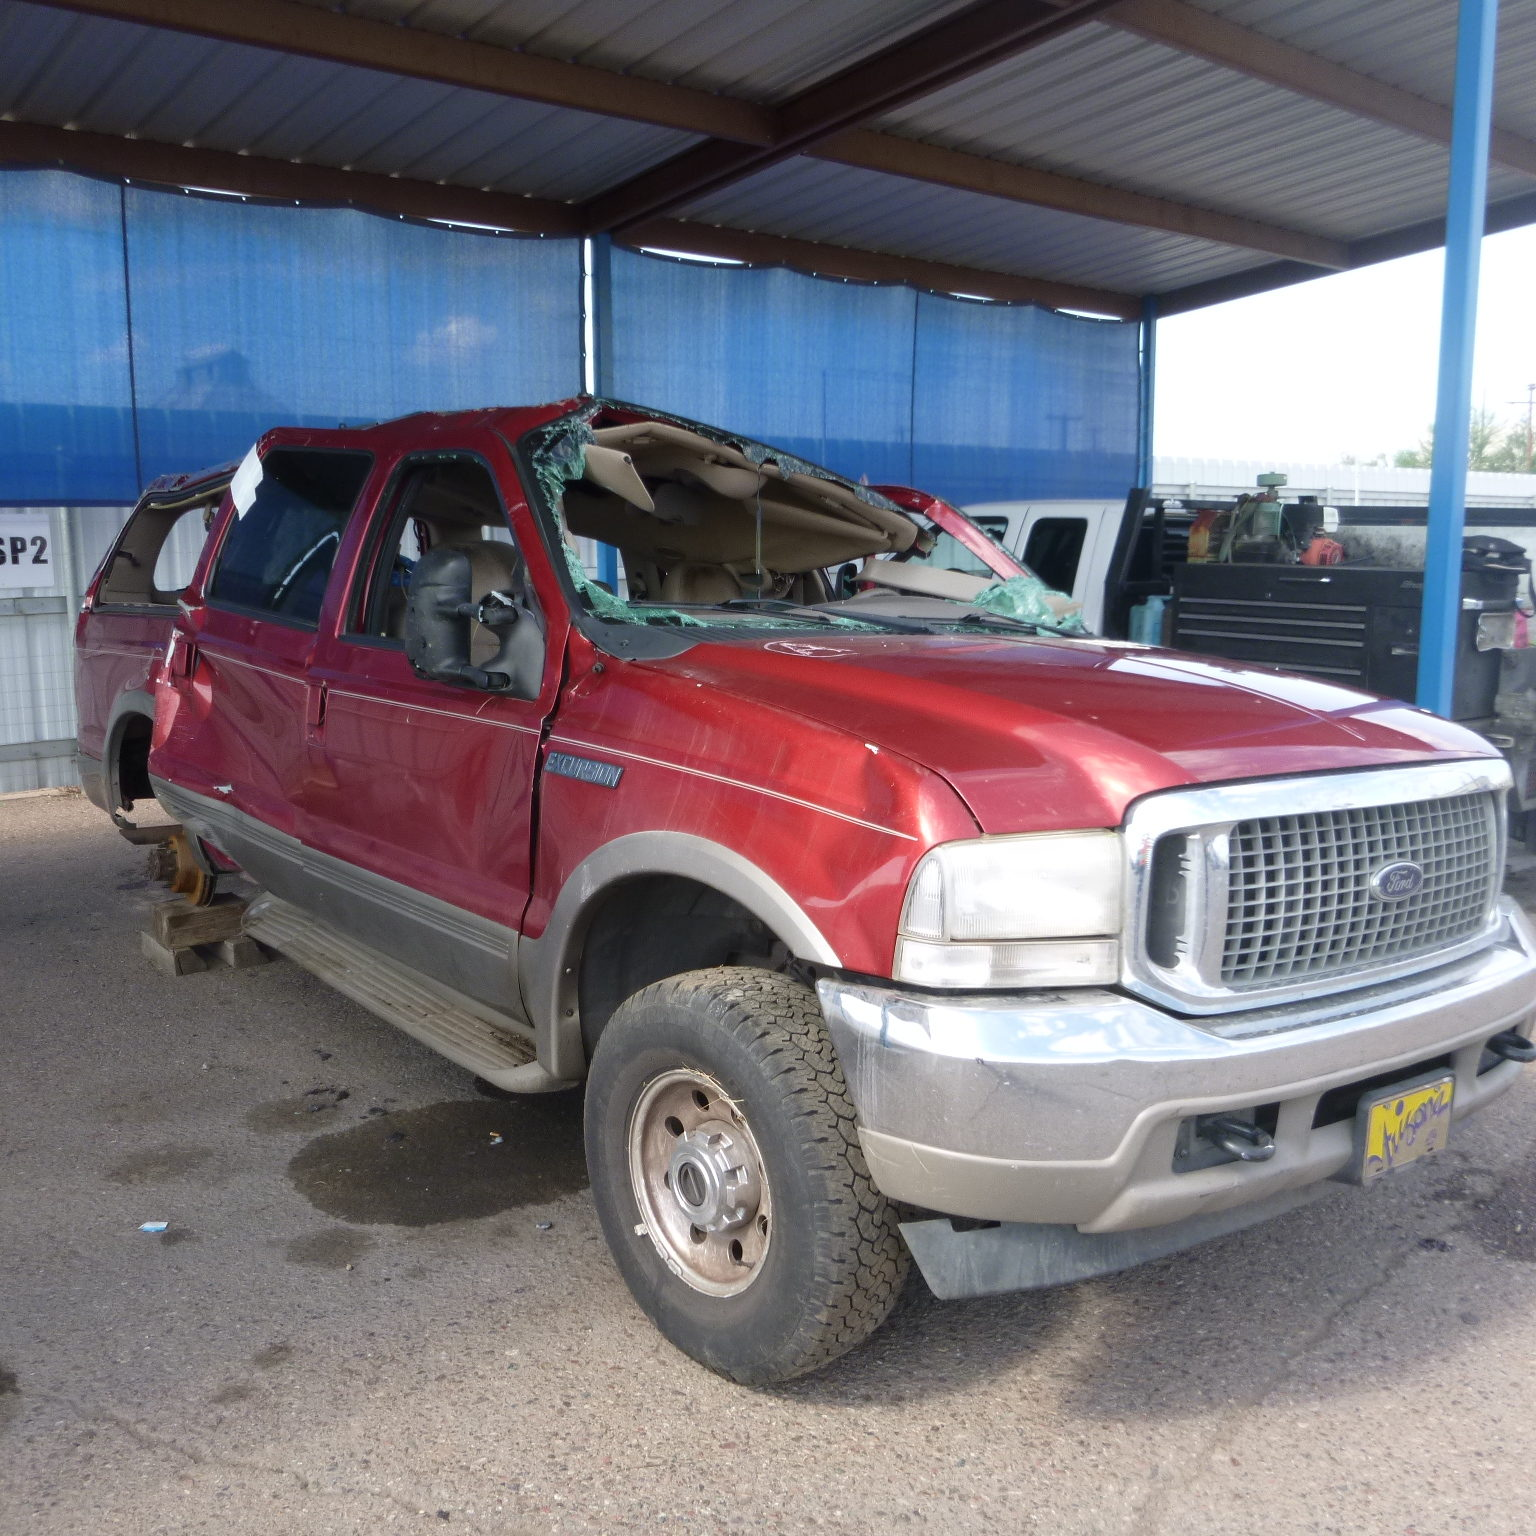 Ford Excursion involved in rollover accident from a tire failure